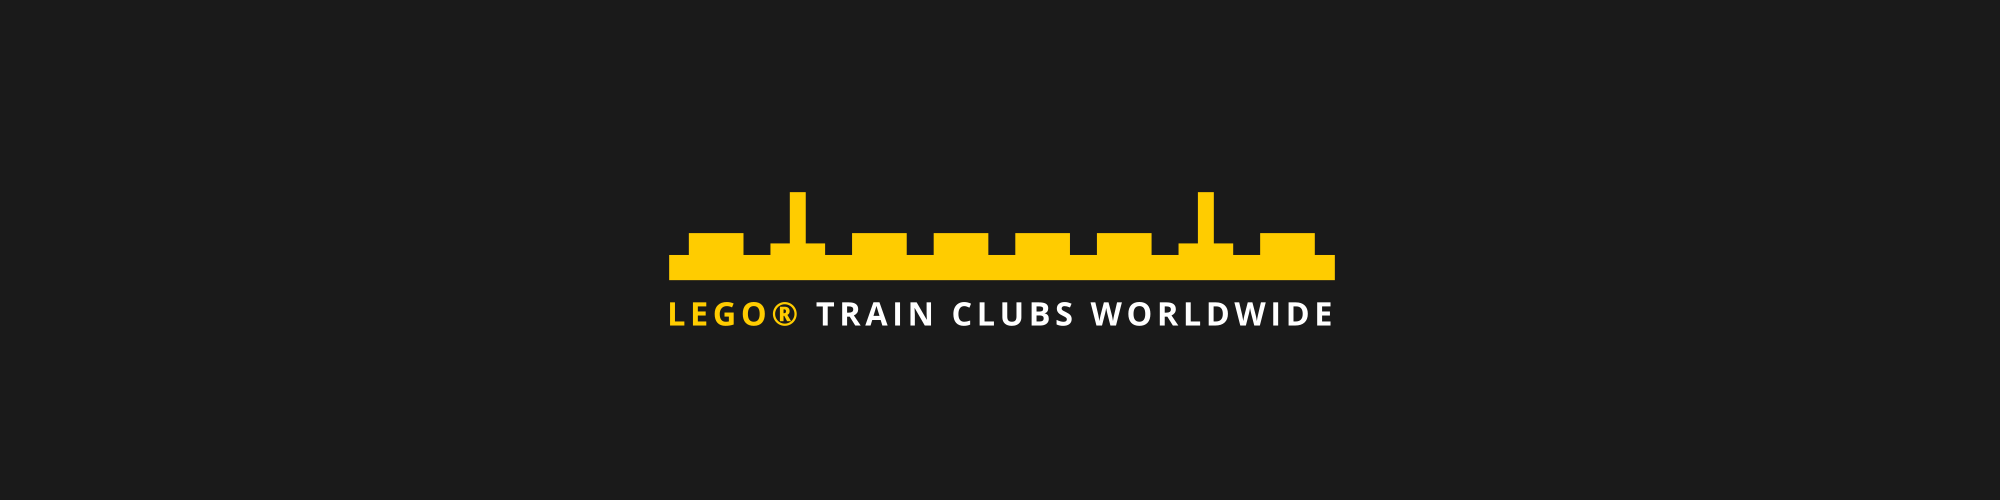 LEGO Train Clubs Worldwide - Facebook group of LTCs